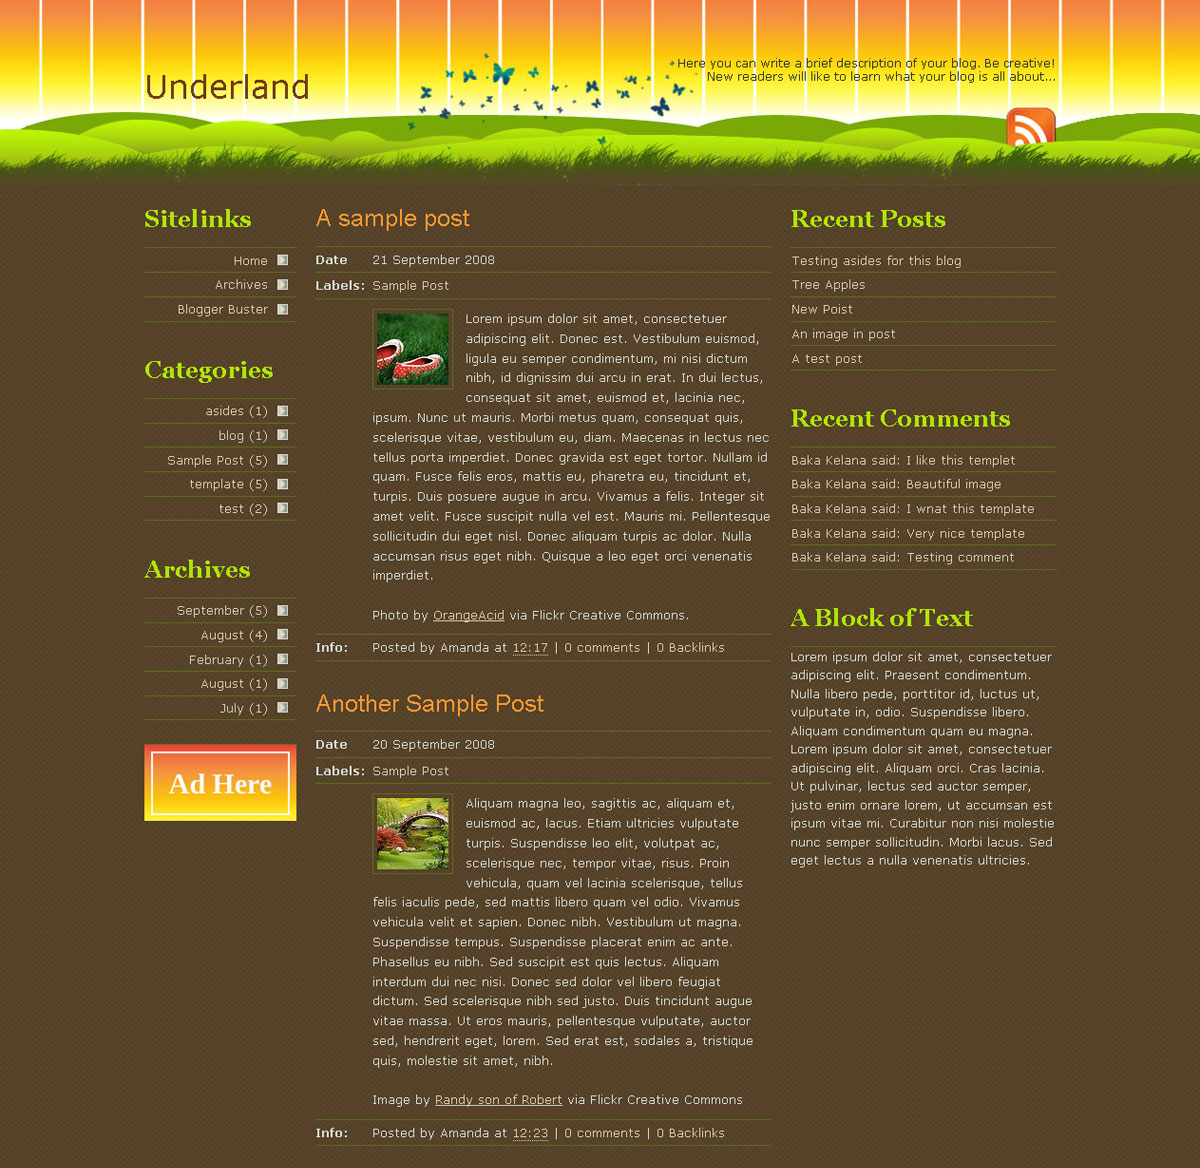 Underland Template for Blogger - This is a short screenshot to demonstrate the overall appearance of the home page.